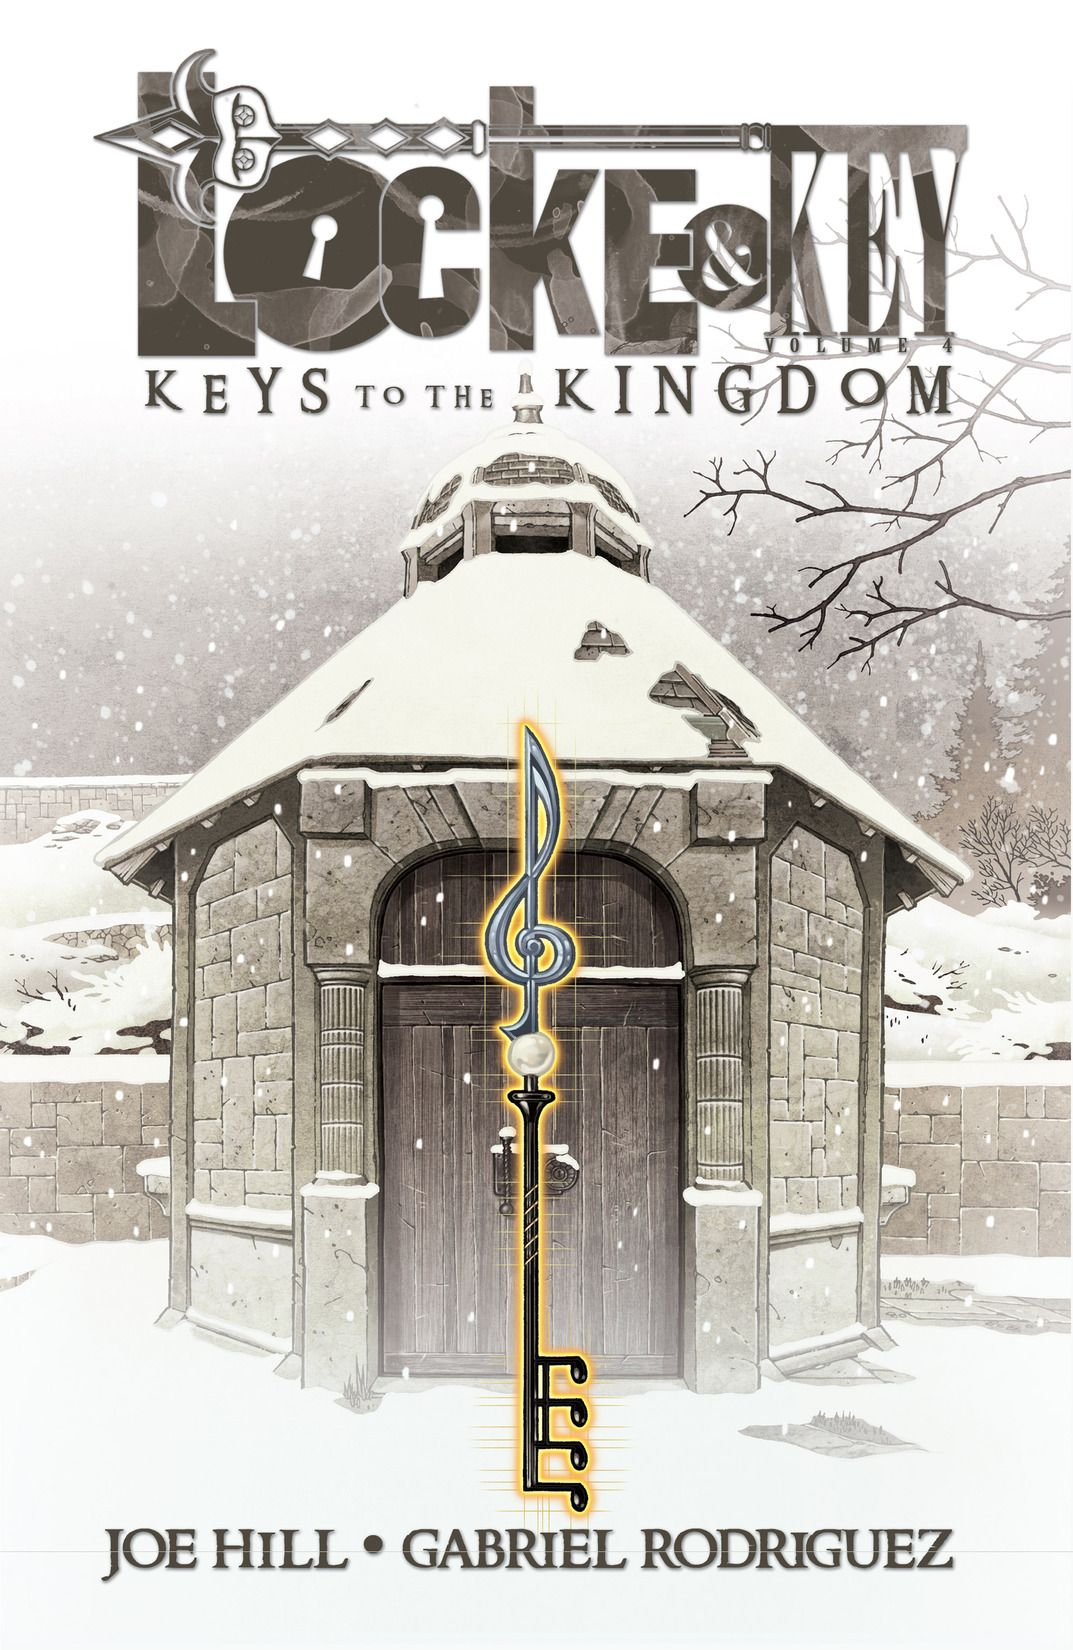 keys of the kingdom, is written by the one and only, Joe Hill. The art is by the amazing, Gabriel Rodriguez